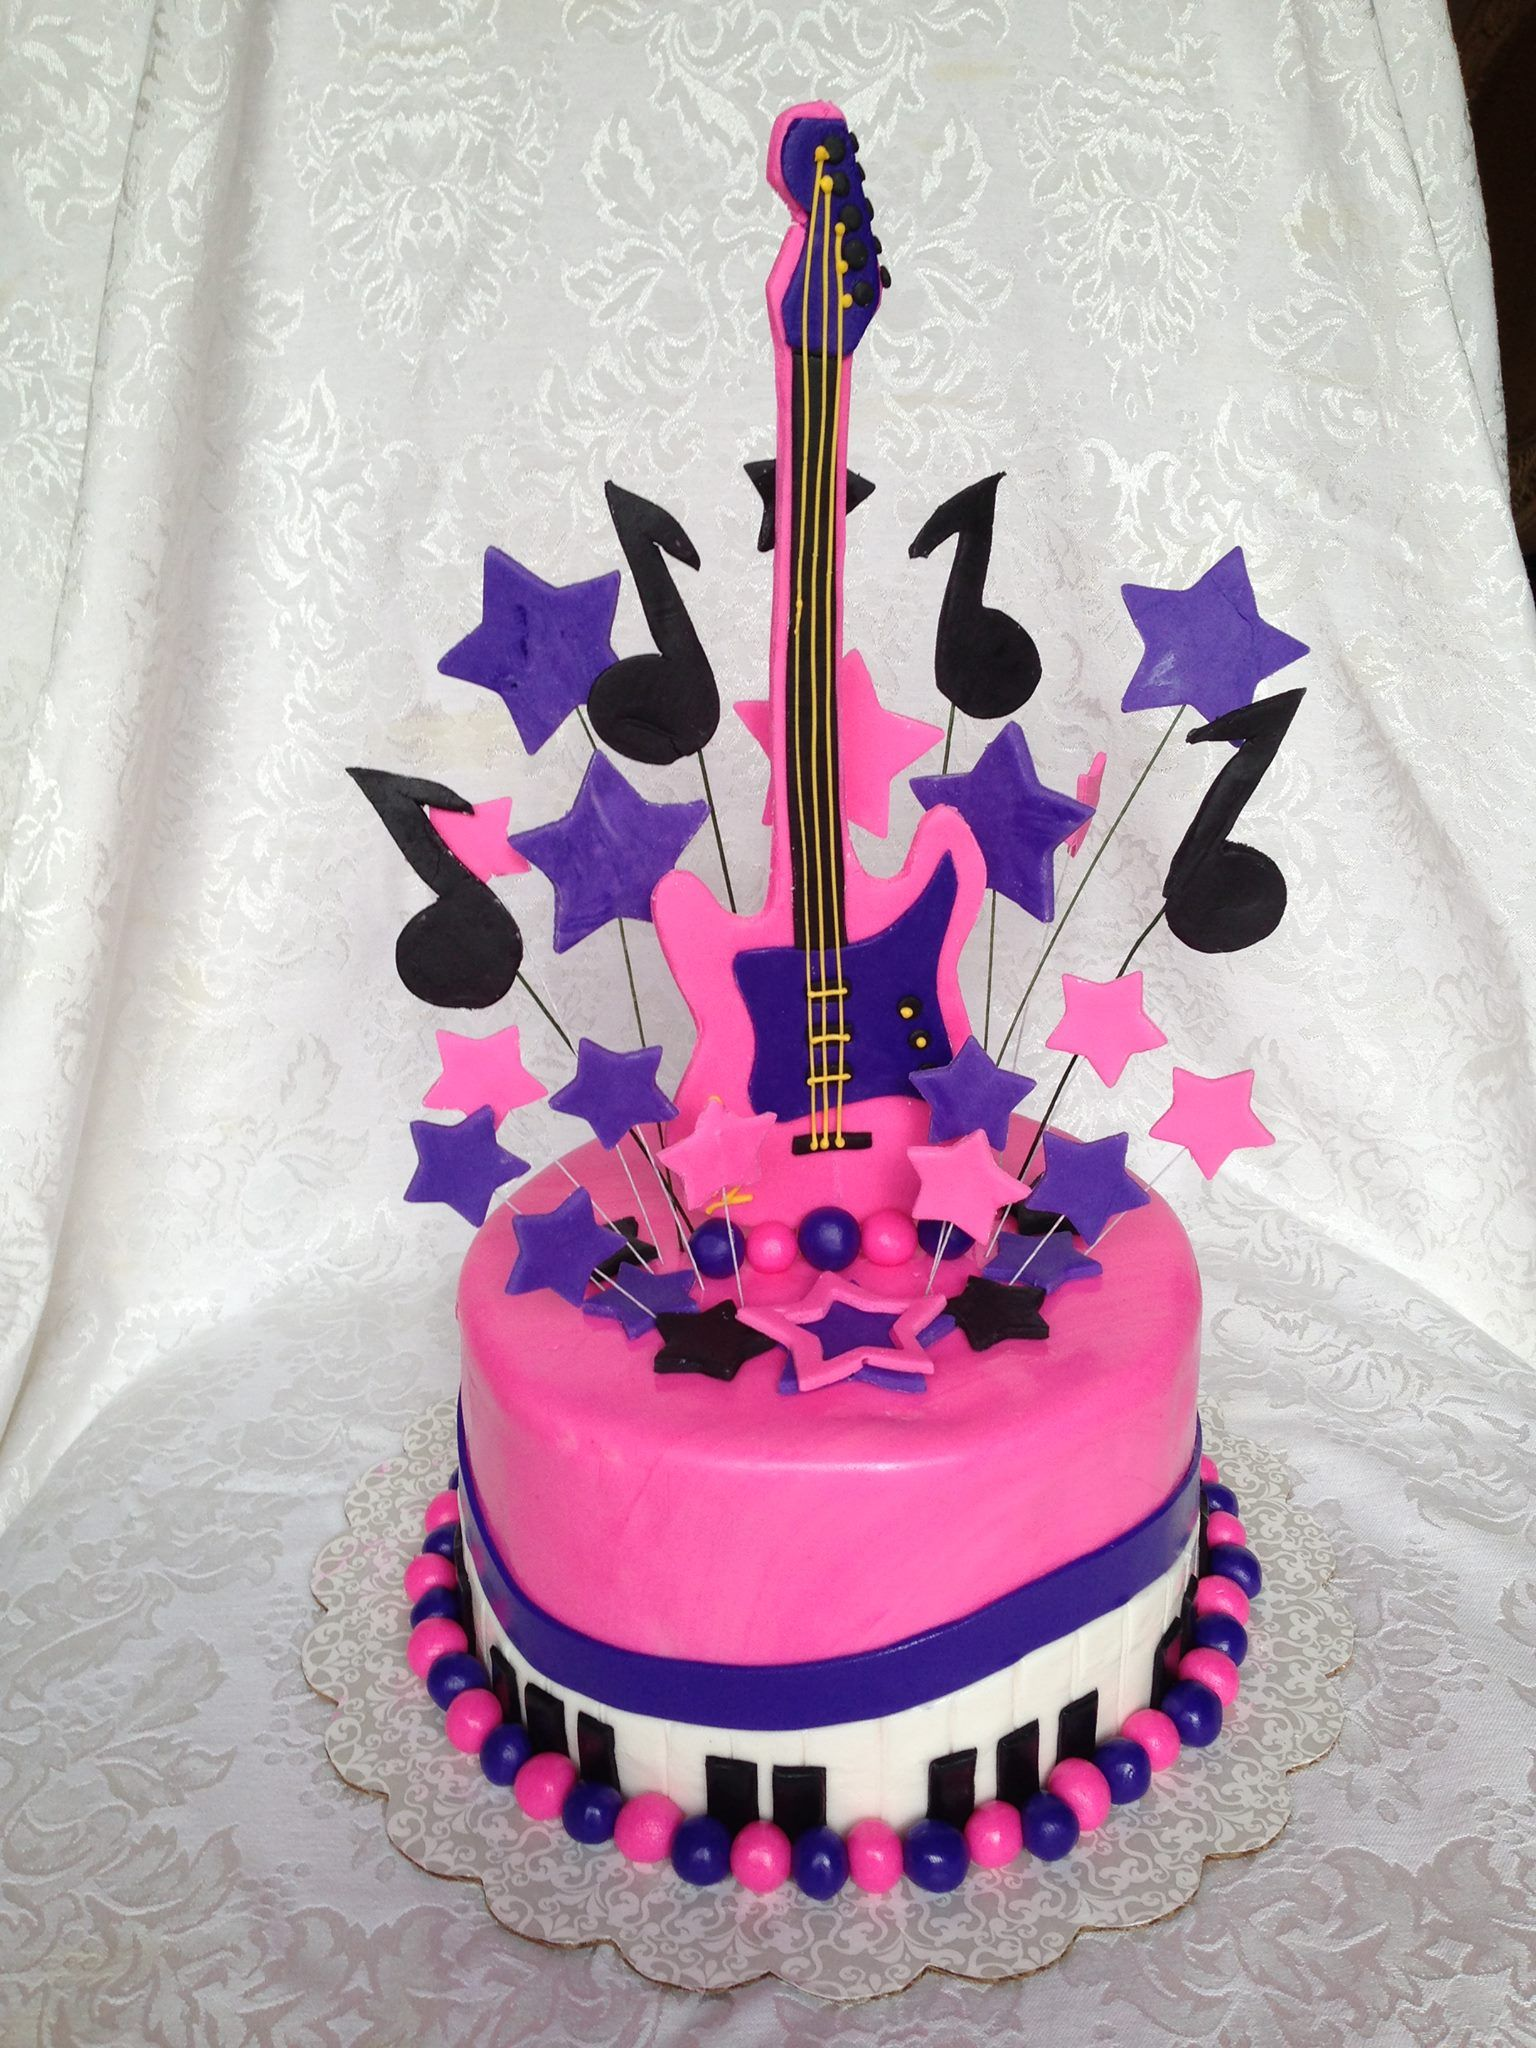 Girl S Pink And Purple Rock And Roll Cake With Guitar And Keyboard